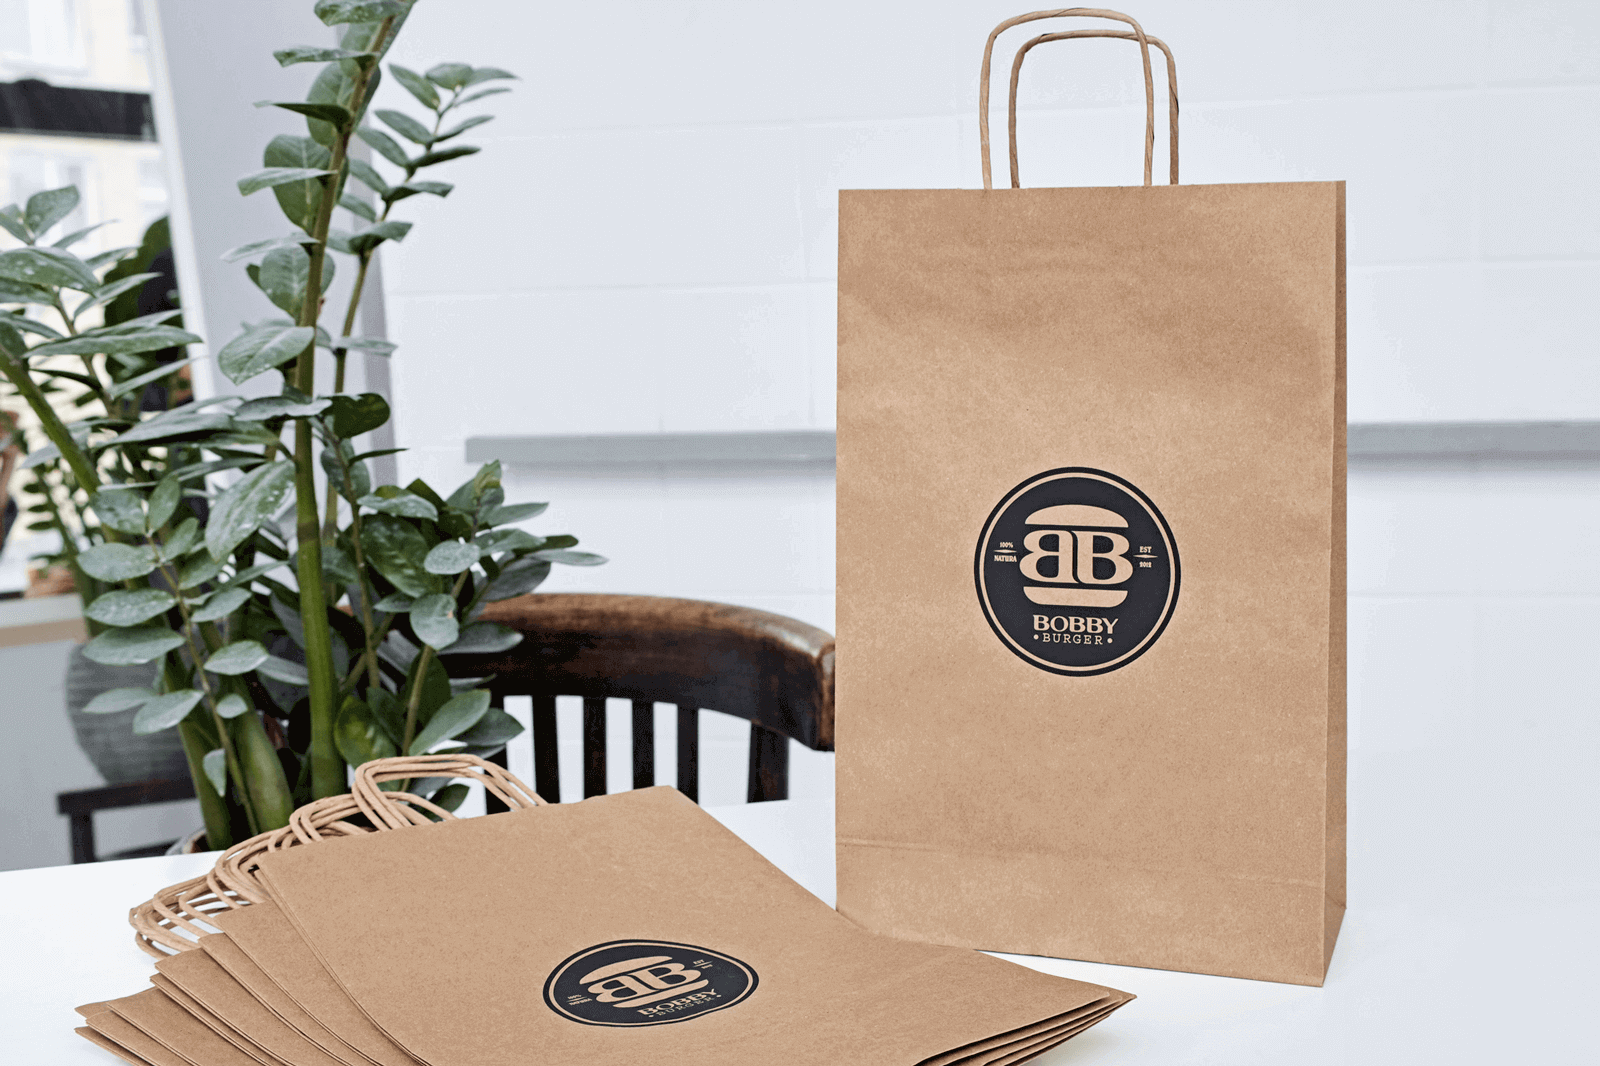 Série de sacs en papier kraft, un packaging éco-responsable